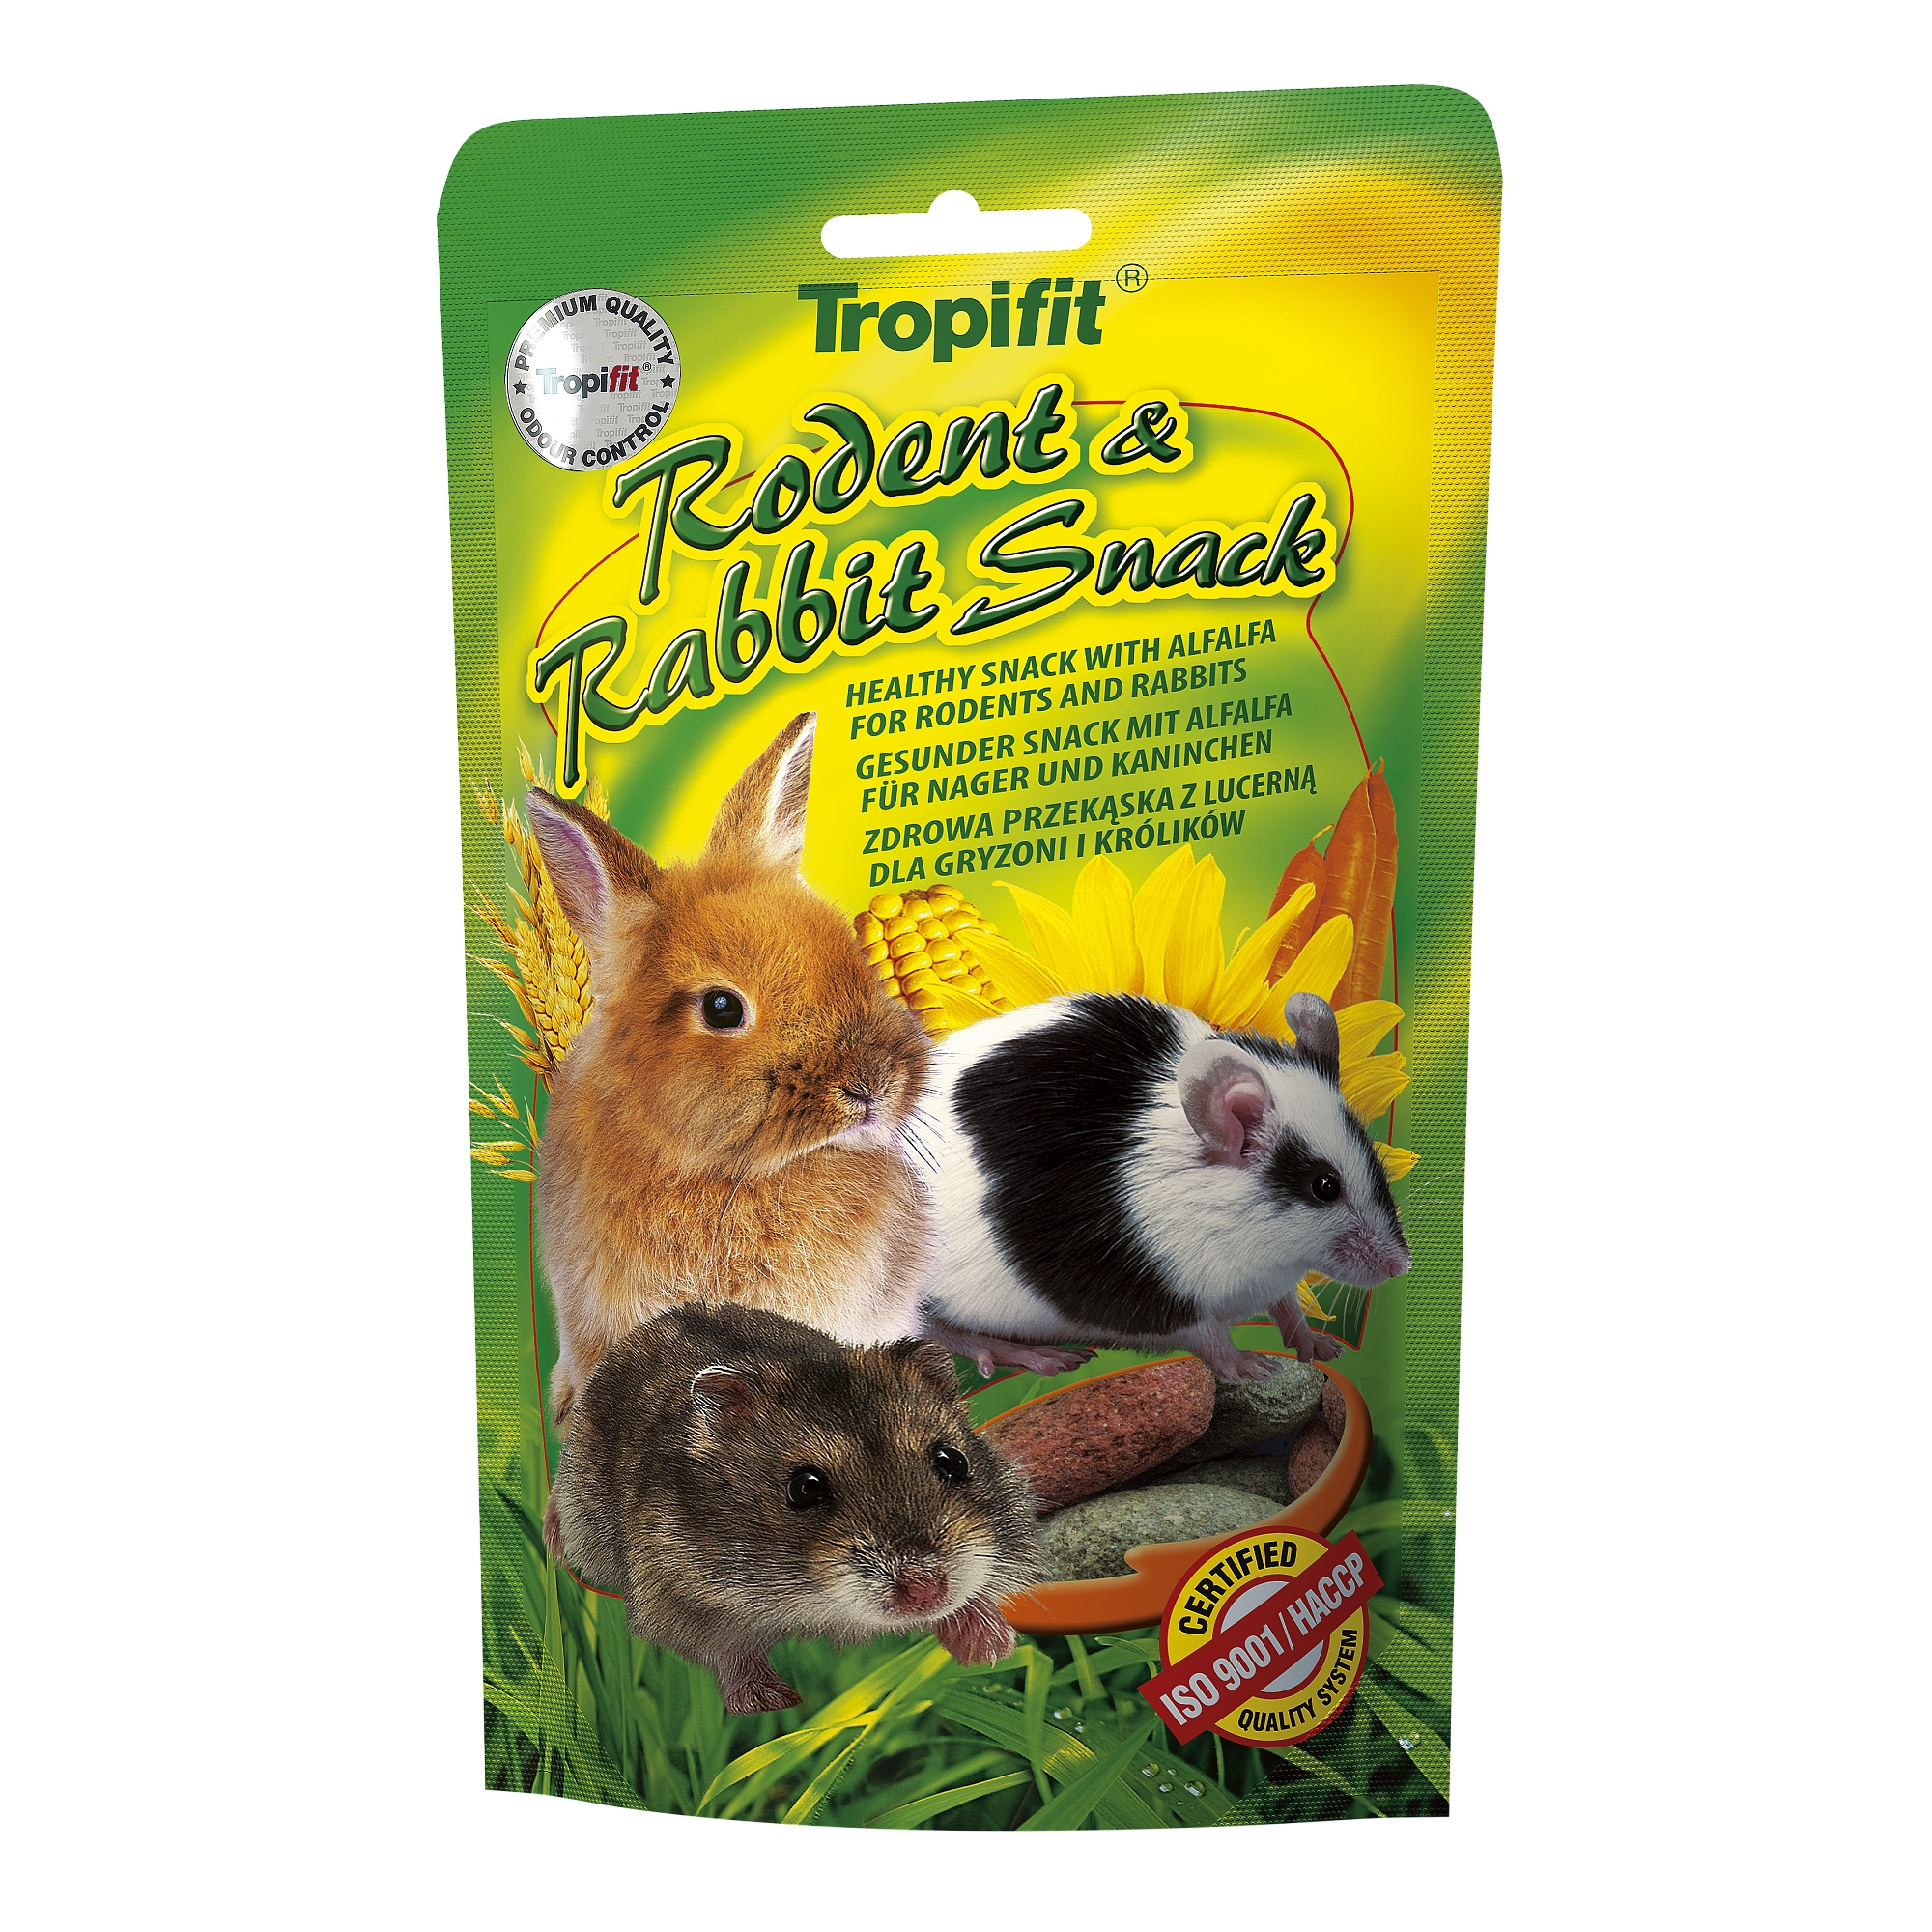 Tropifit Rodents & Rabbit Snack - 110g